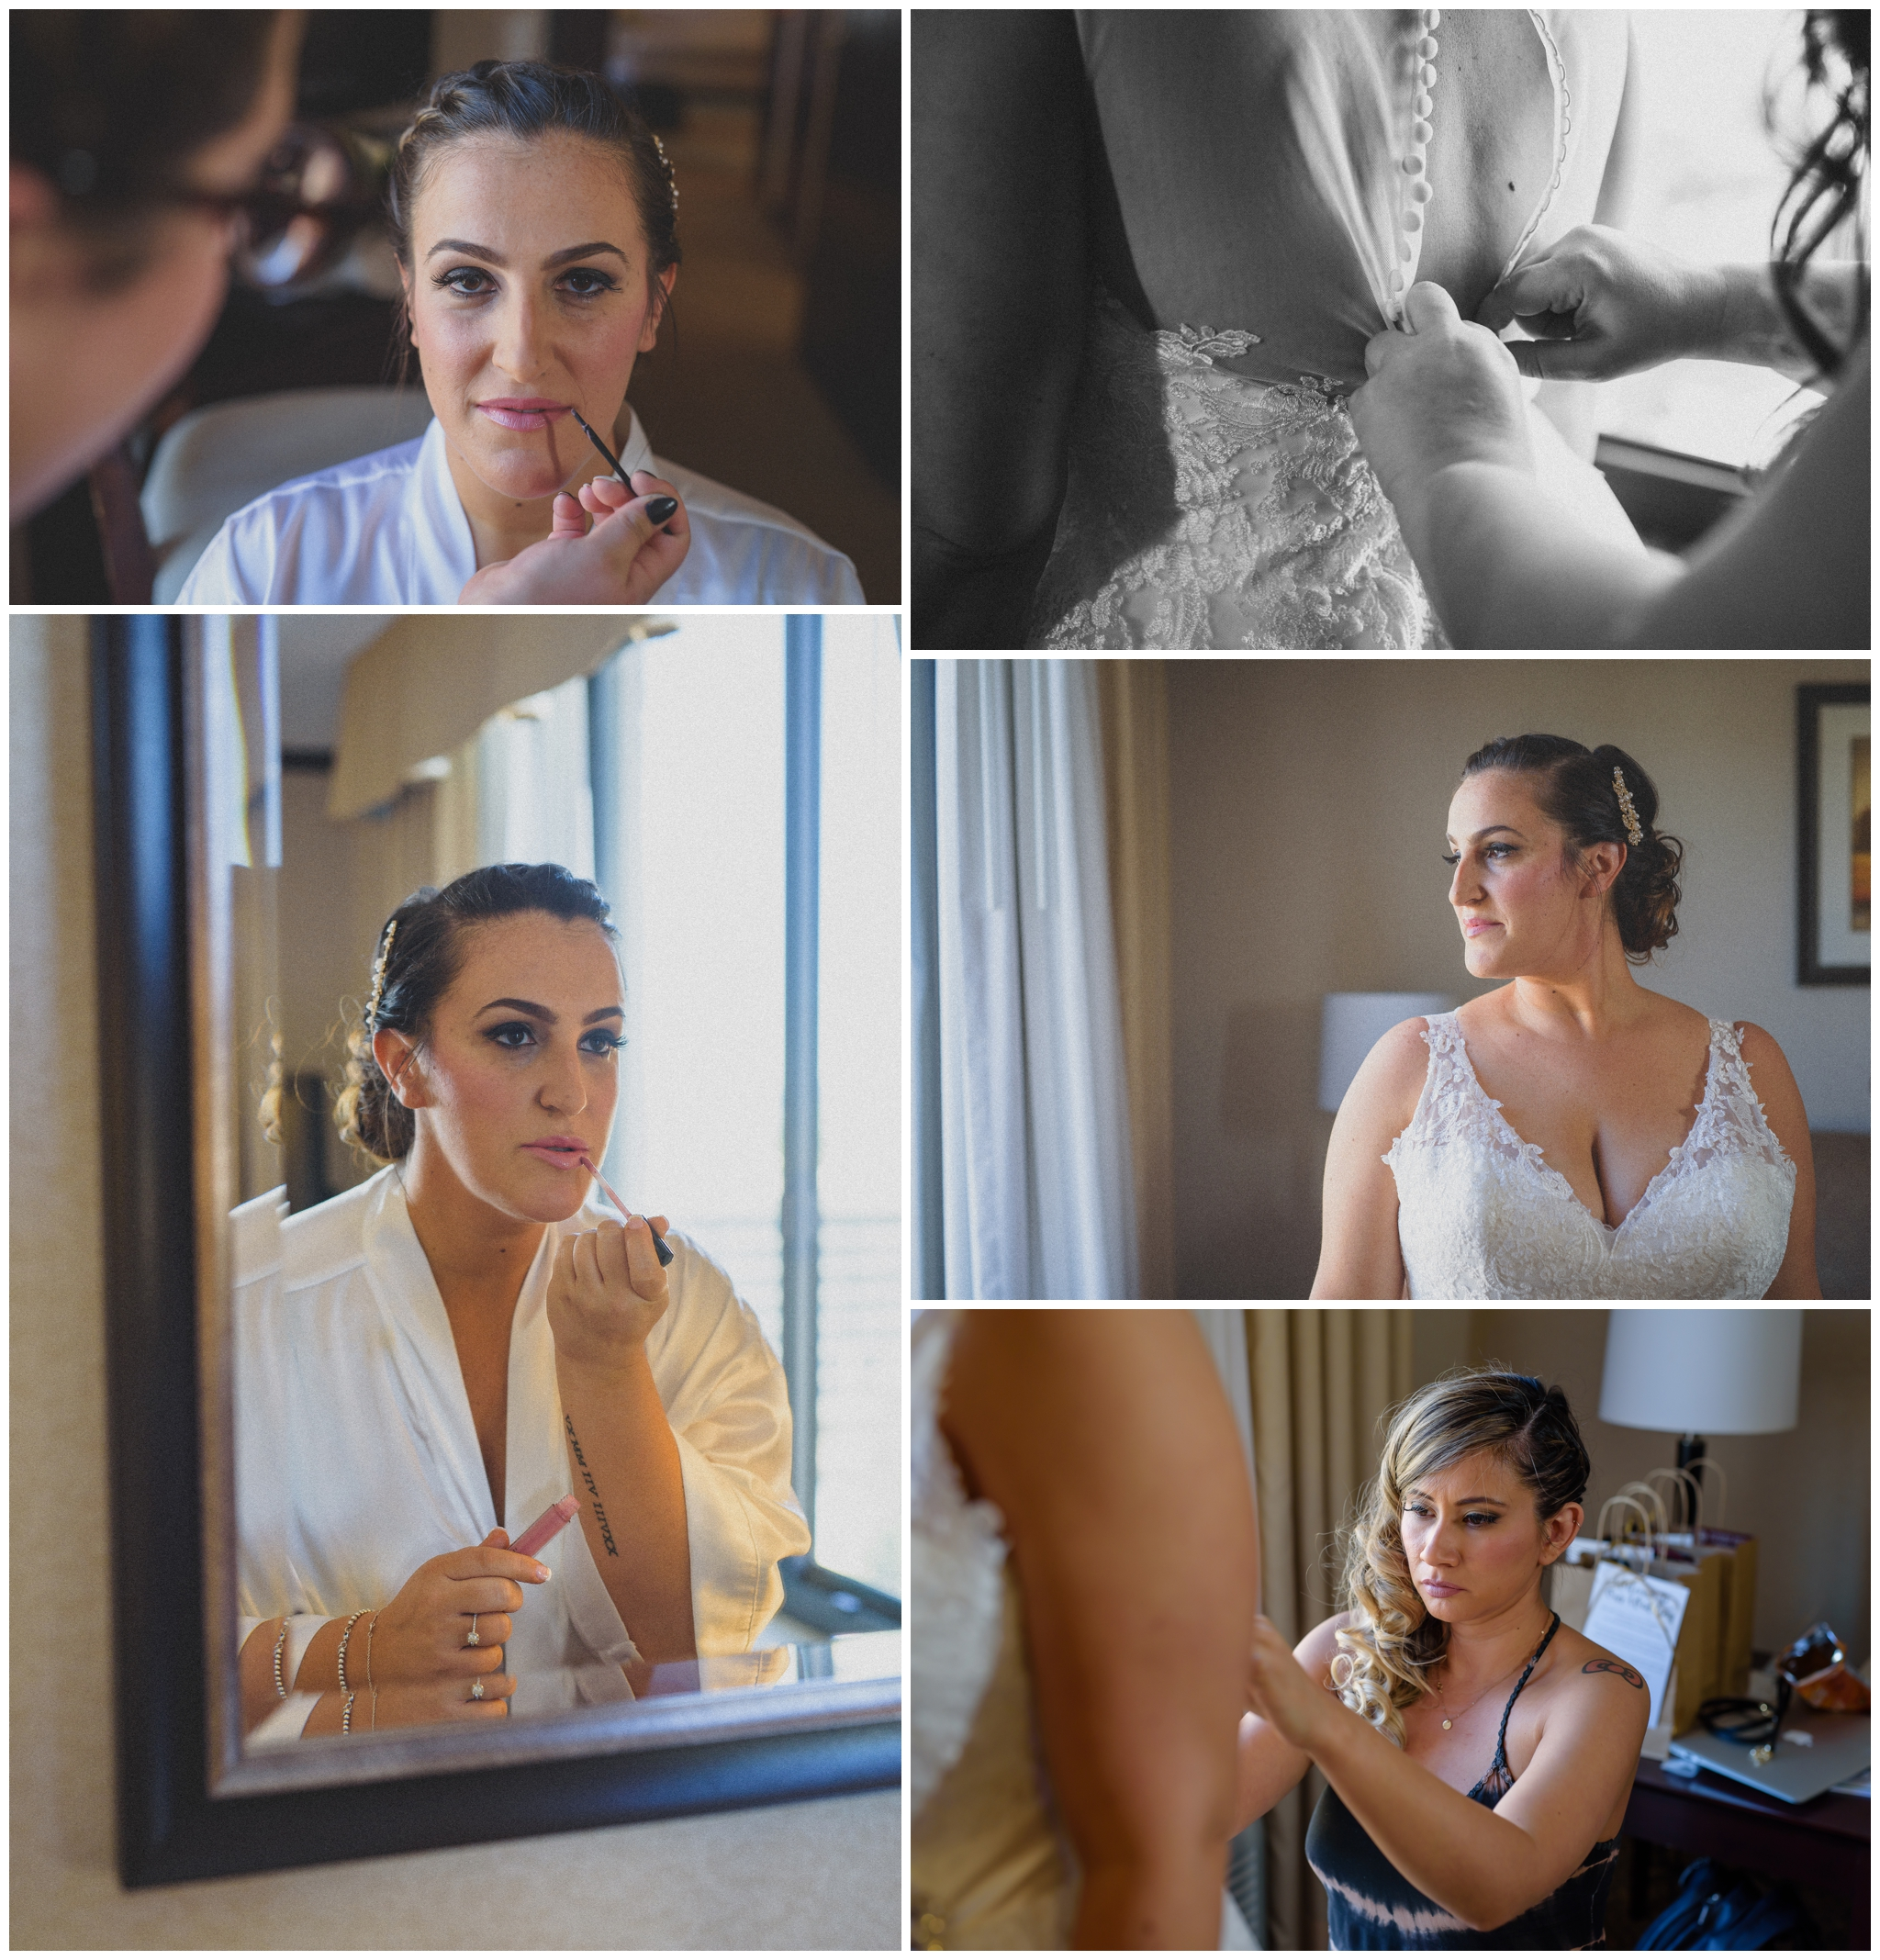 I love the getting ready shots. It's my chance to get creative even when the room is busy with the beautiful bride and bridesmaids getting ready. With time permitting we can get shots of every part of the process although generally we don't photograph the bride much when the make up is being applied. Stacey and her family are all so nice and their room had plenty of day light coming in which is always great.